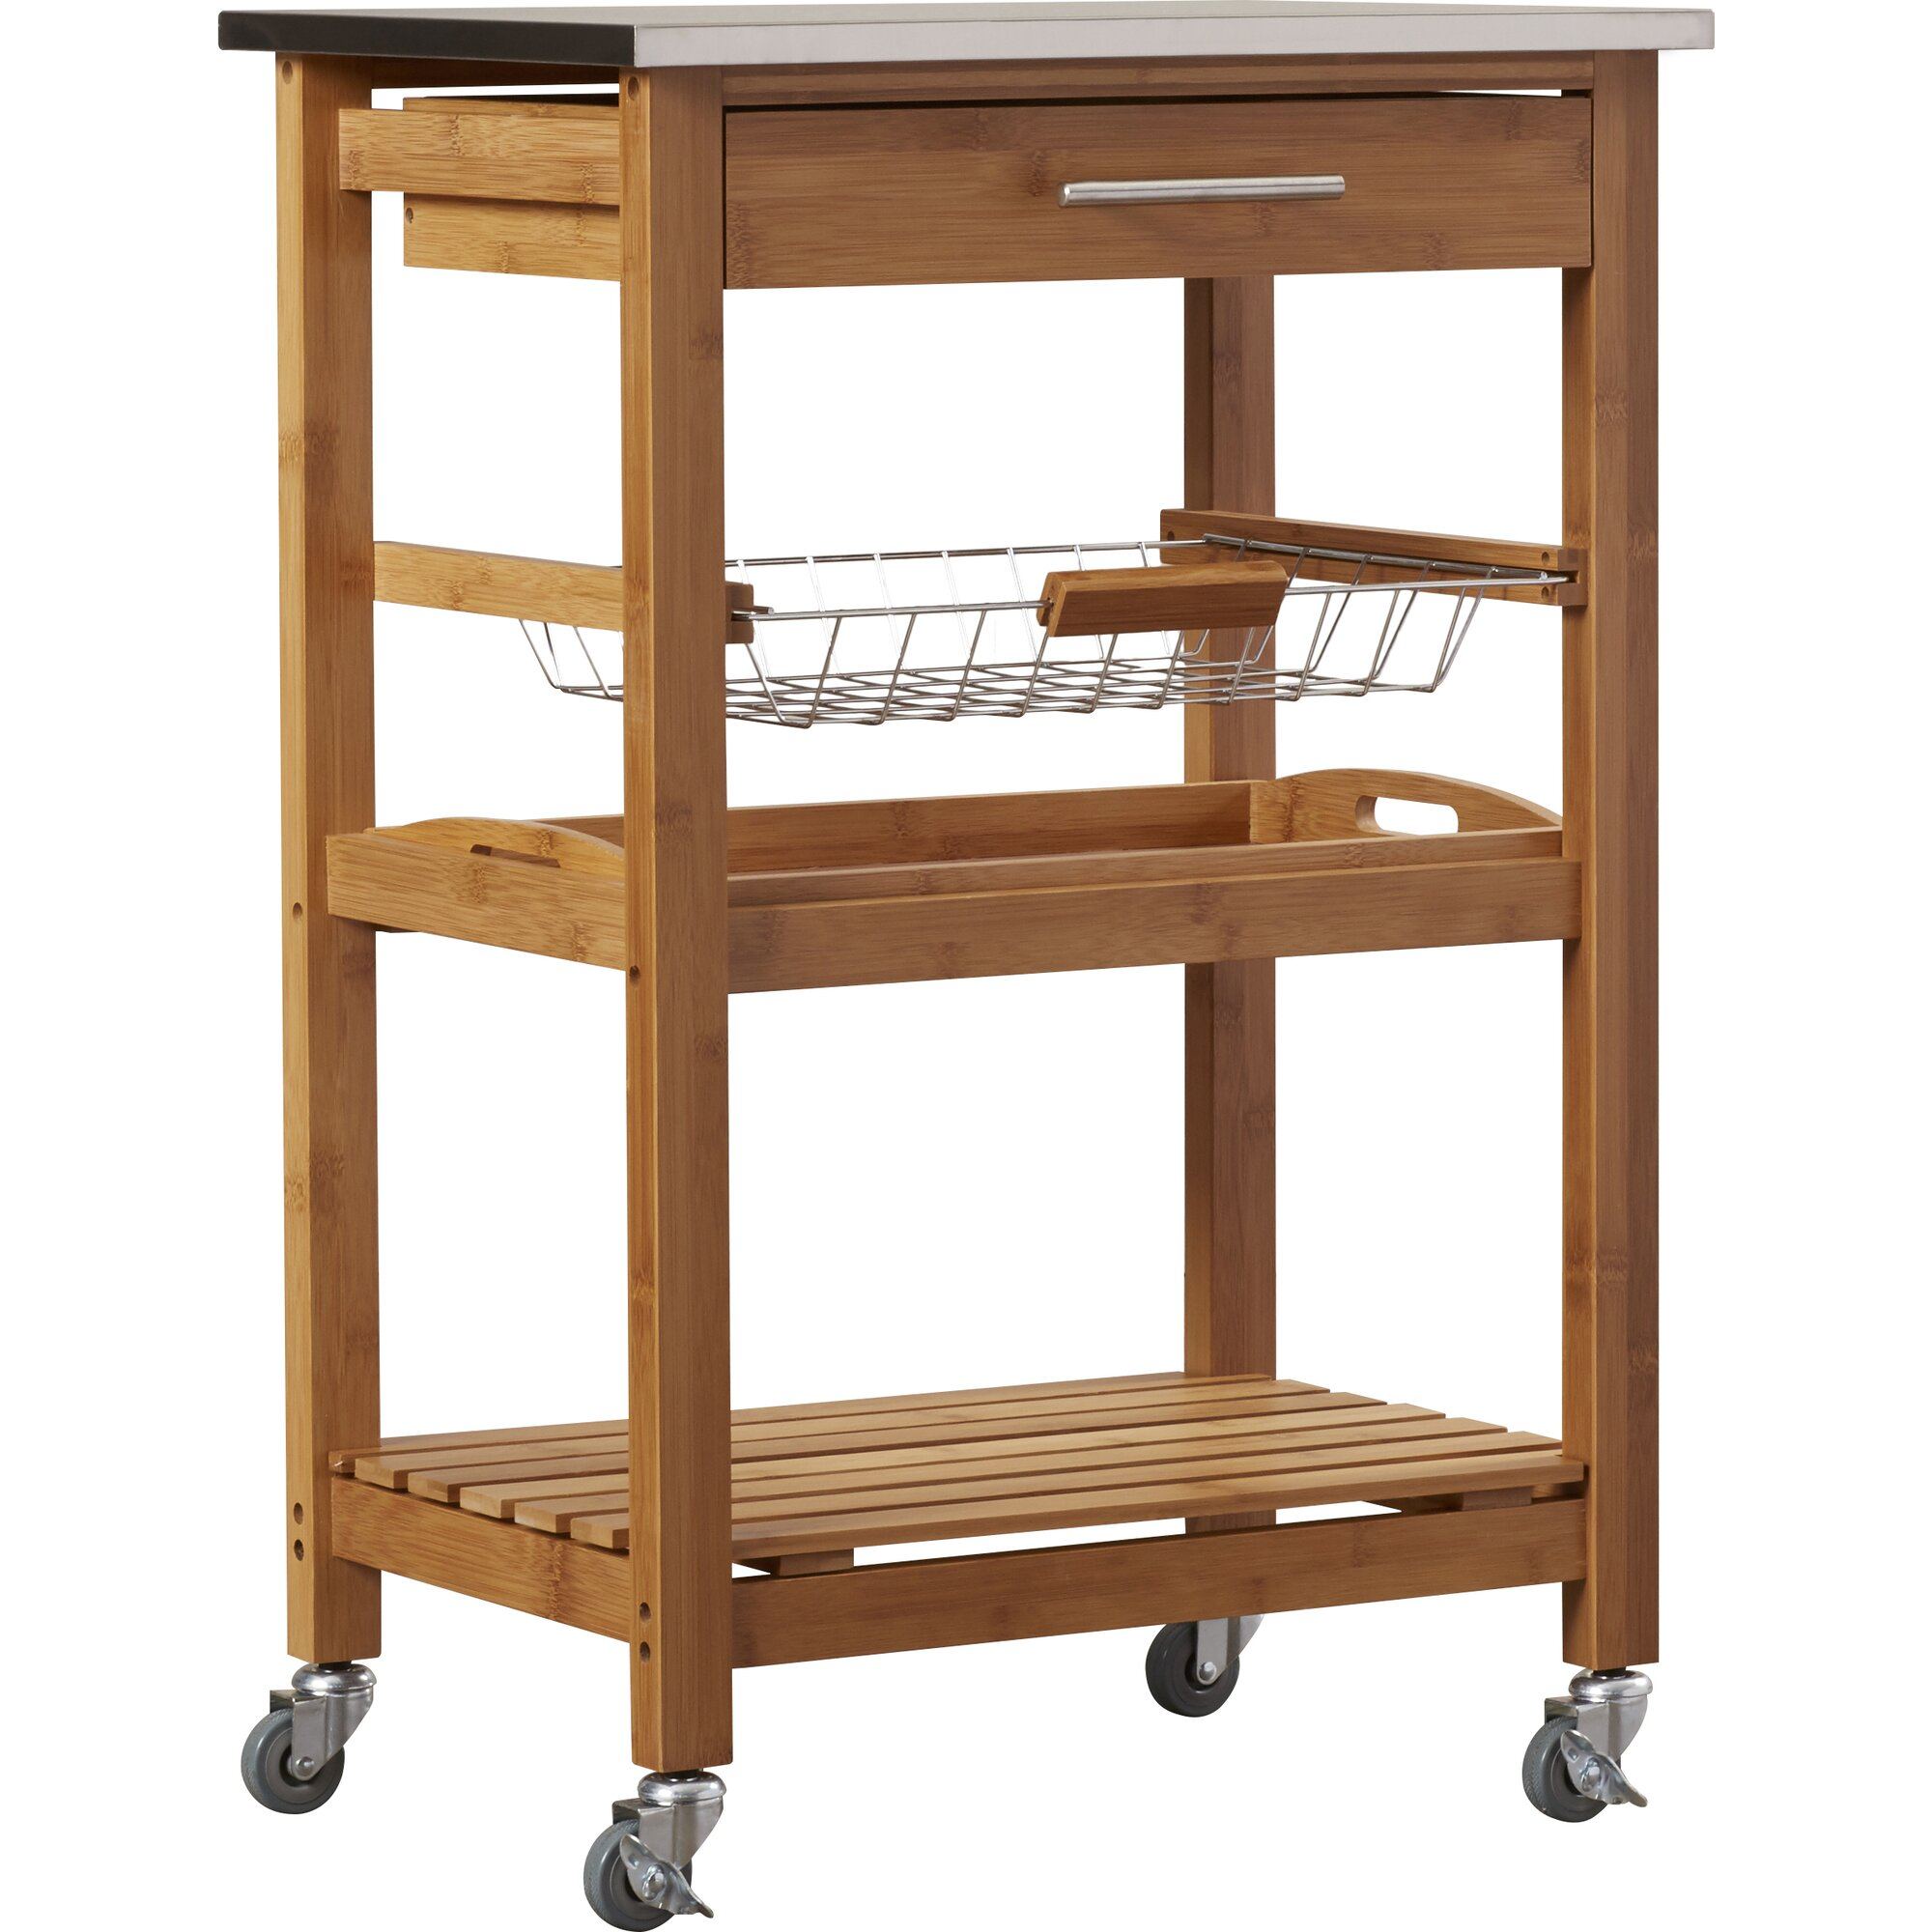 arbor oaks kitchen cart with stainless steel top amp reviews crosley lafayette kitchen cart with stainless steel top